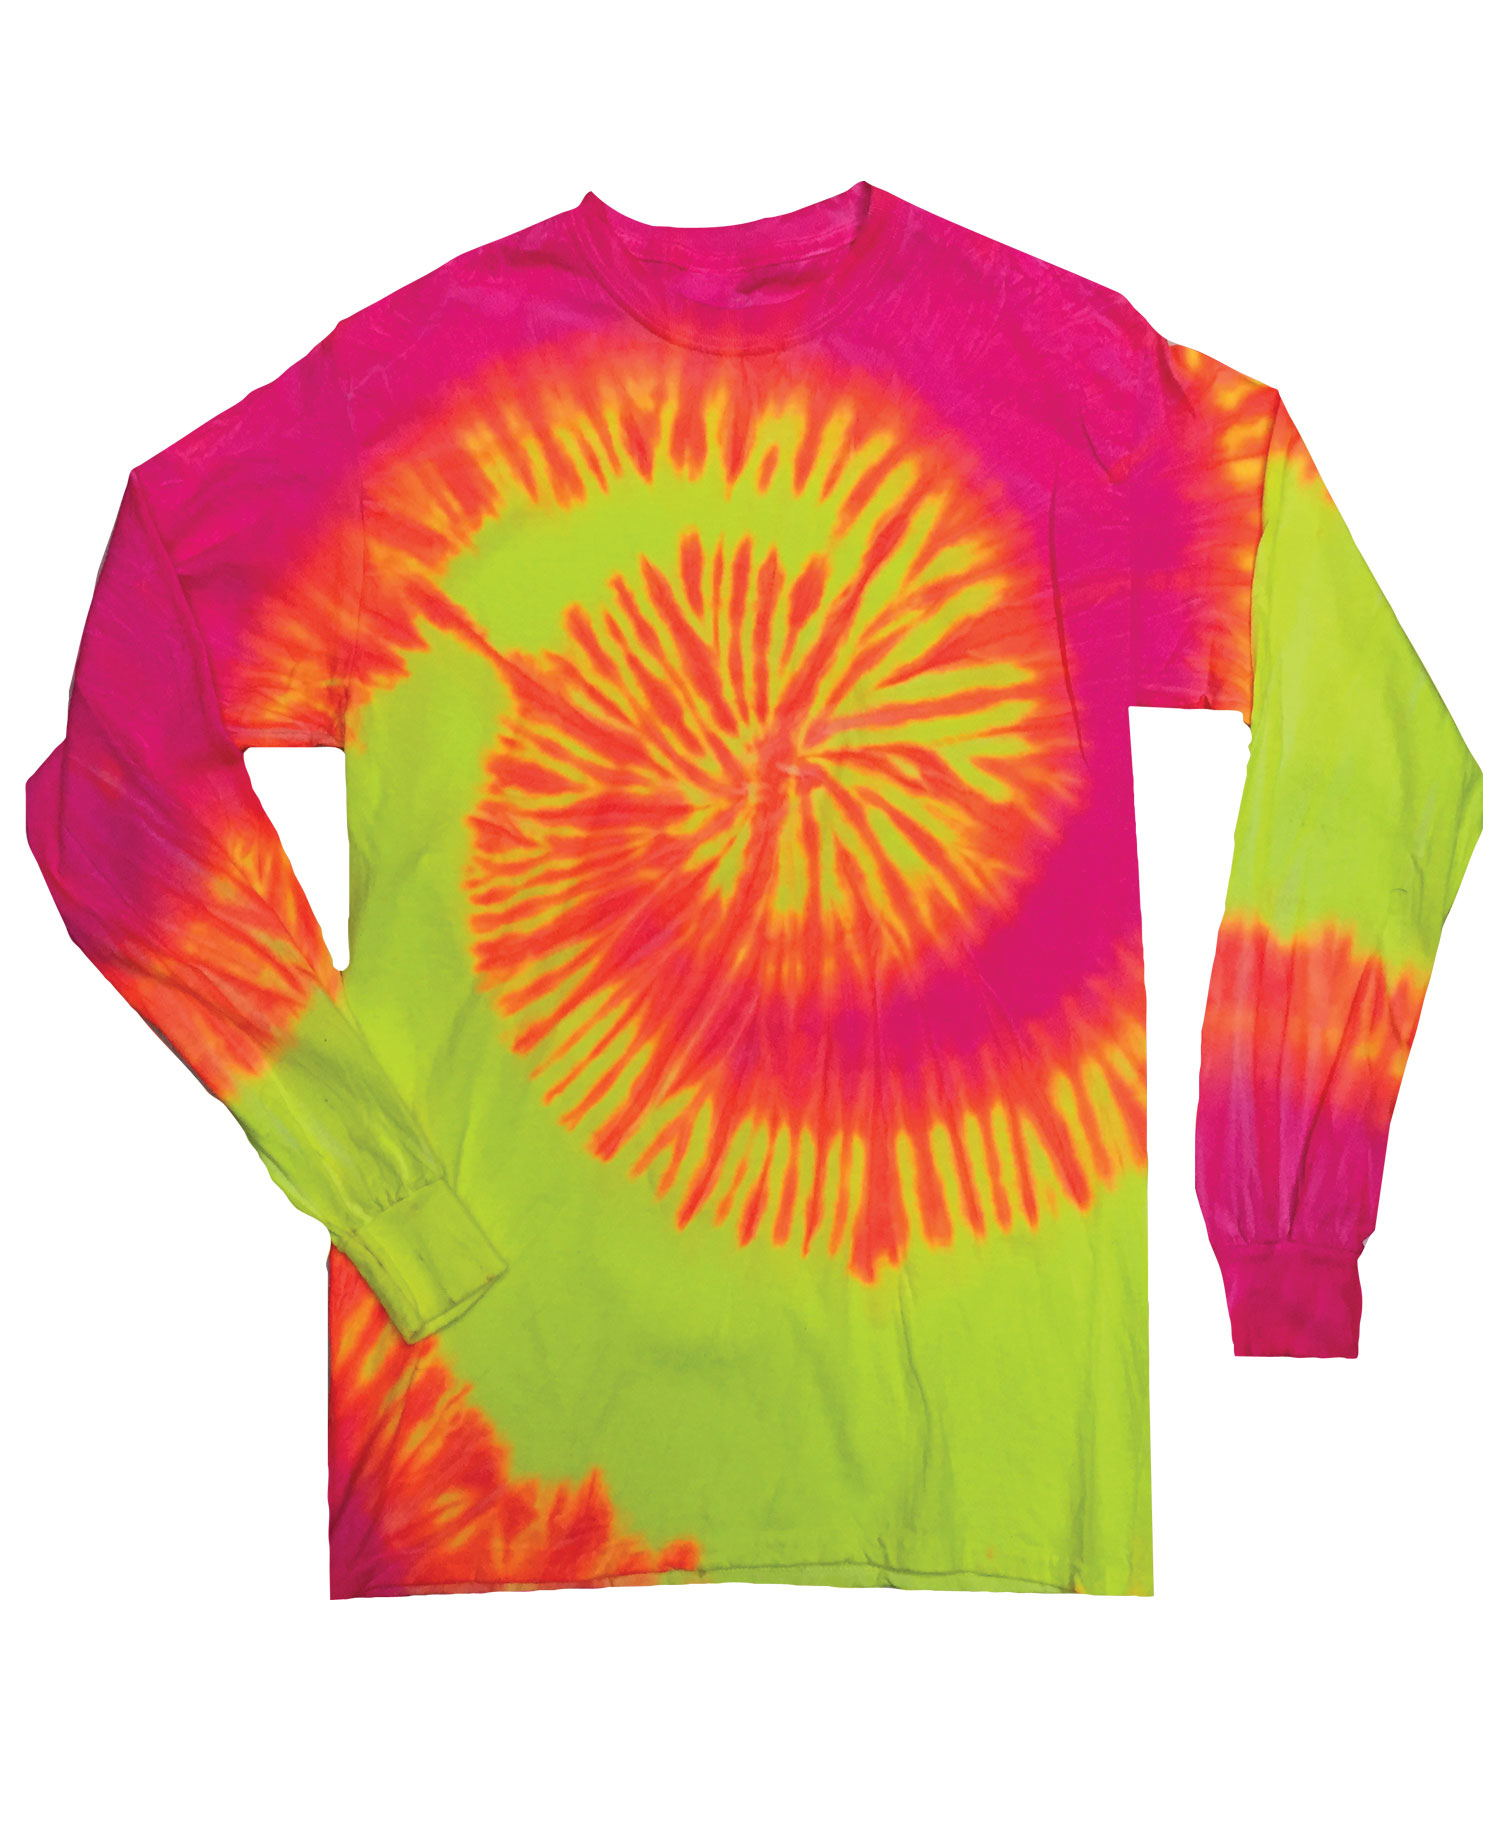 Colortone - T903P Fluorescent Swirl Yth Long Sleeve ...